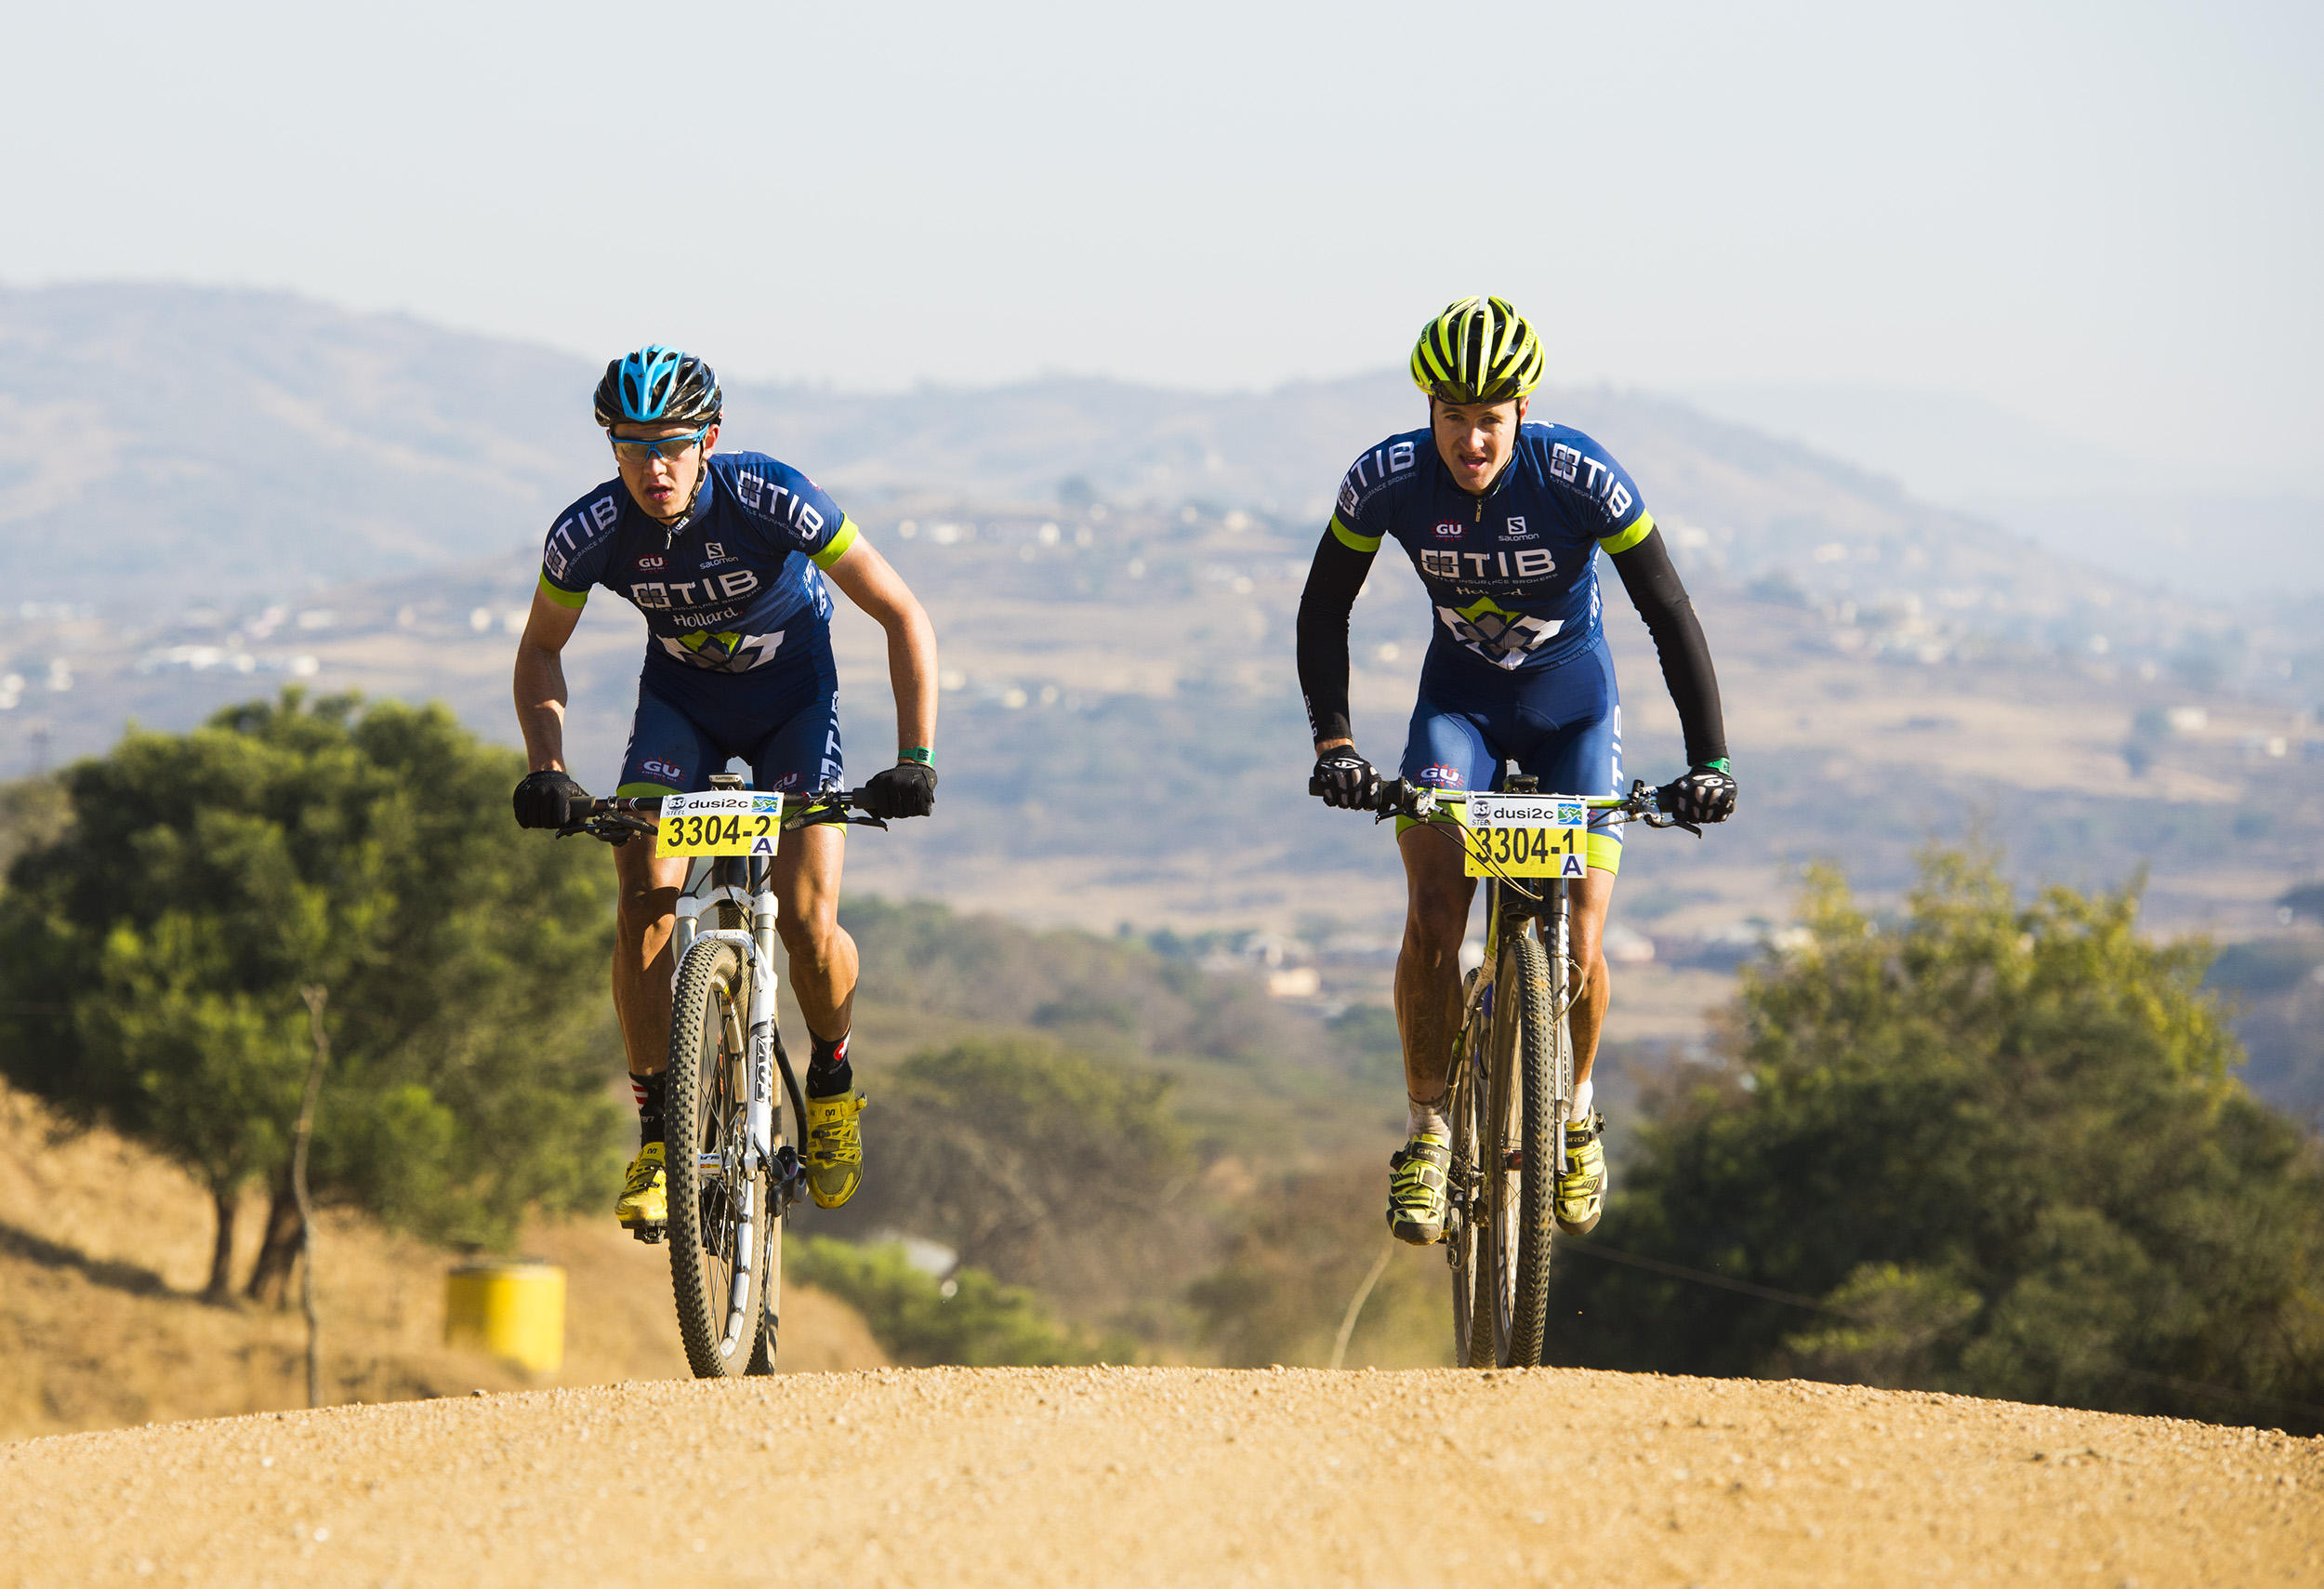 Hill, Louw tame the hills to lead dusi2c